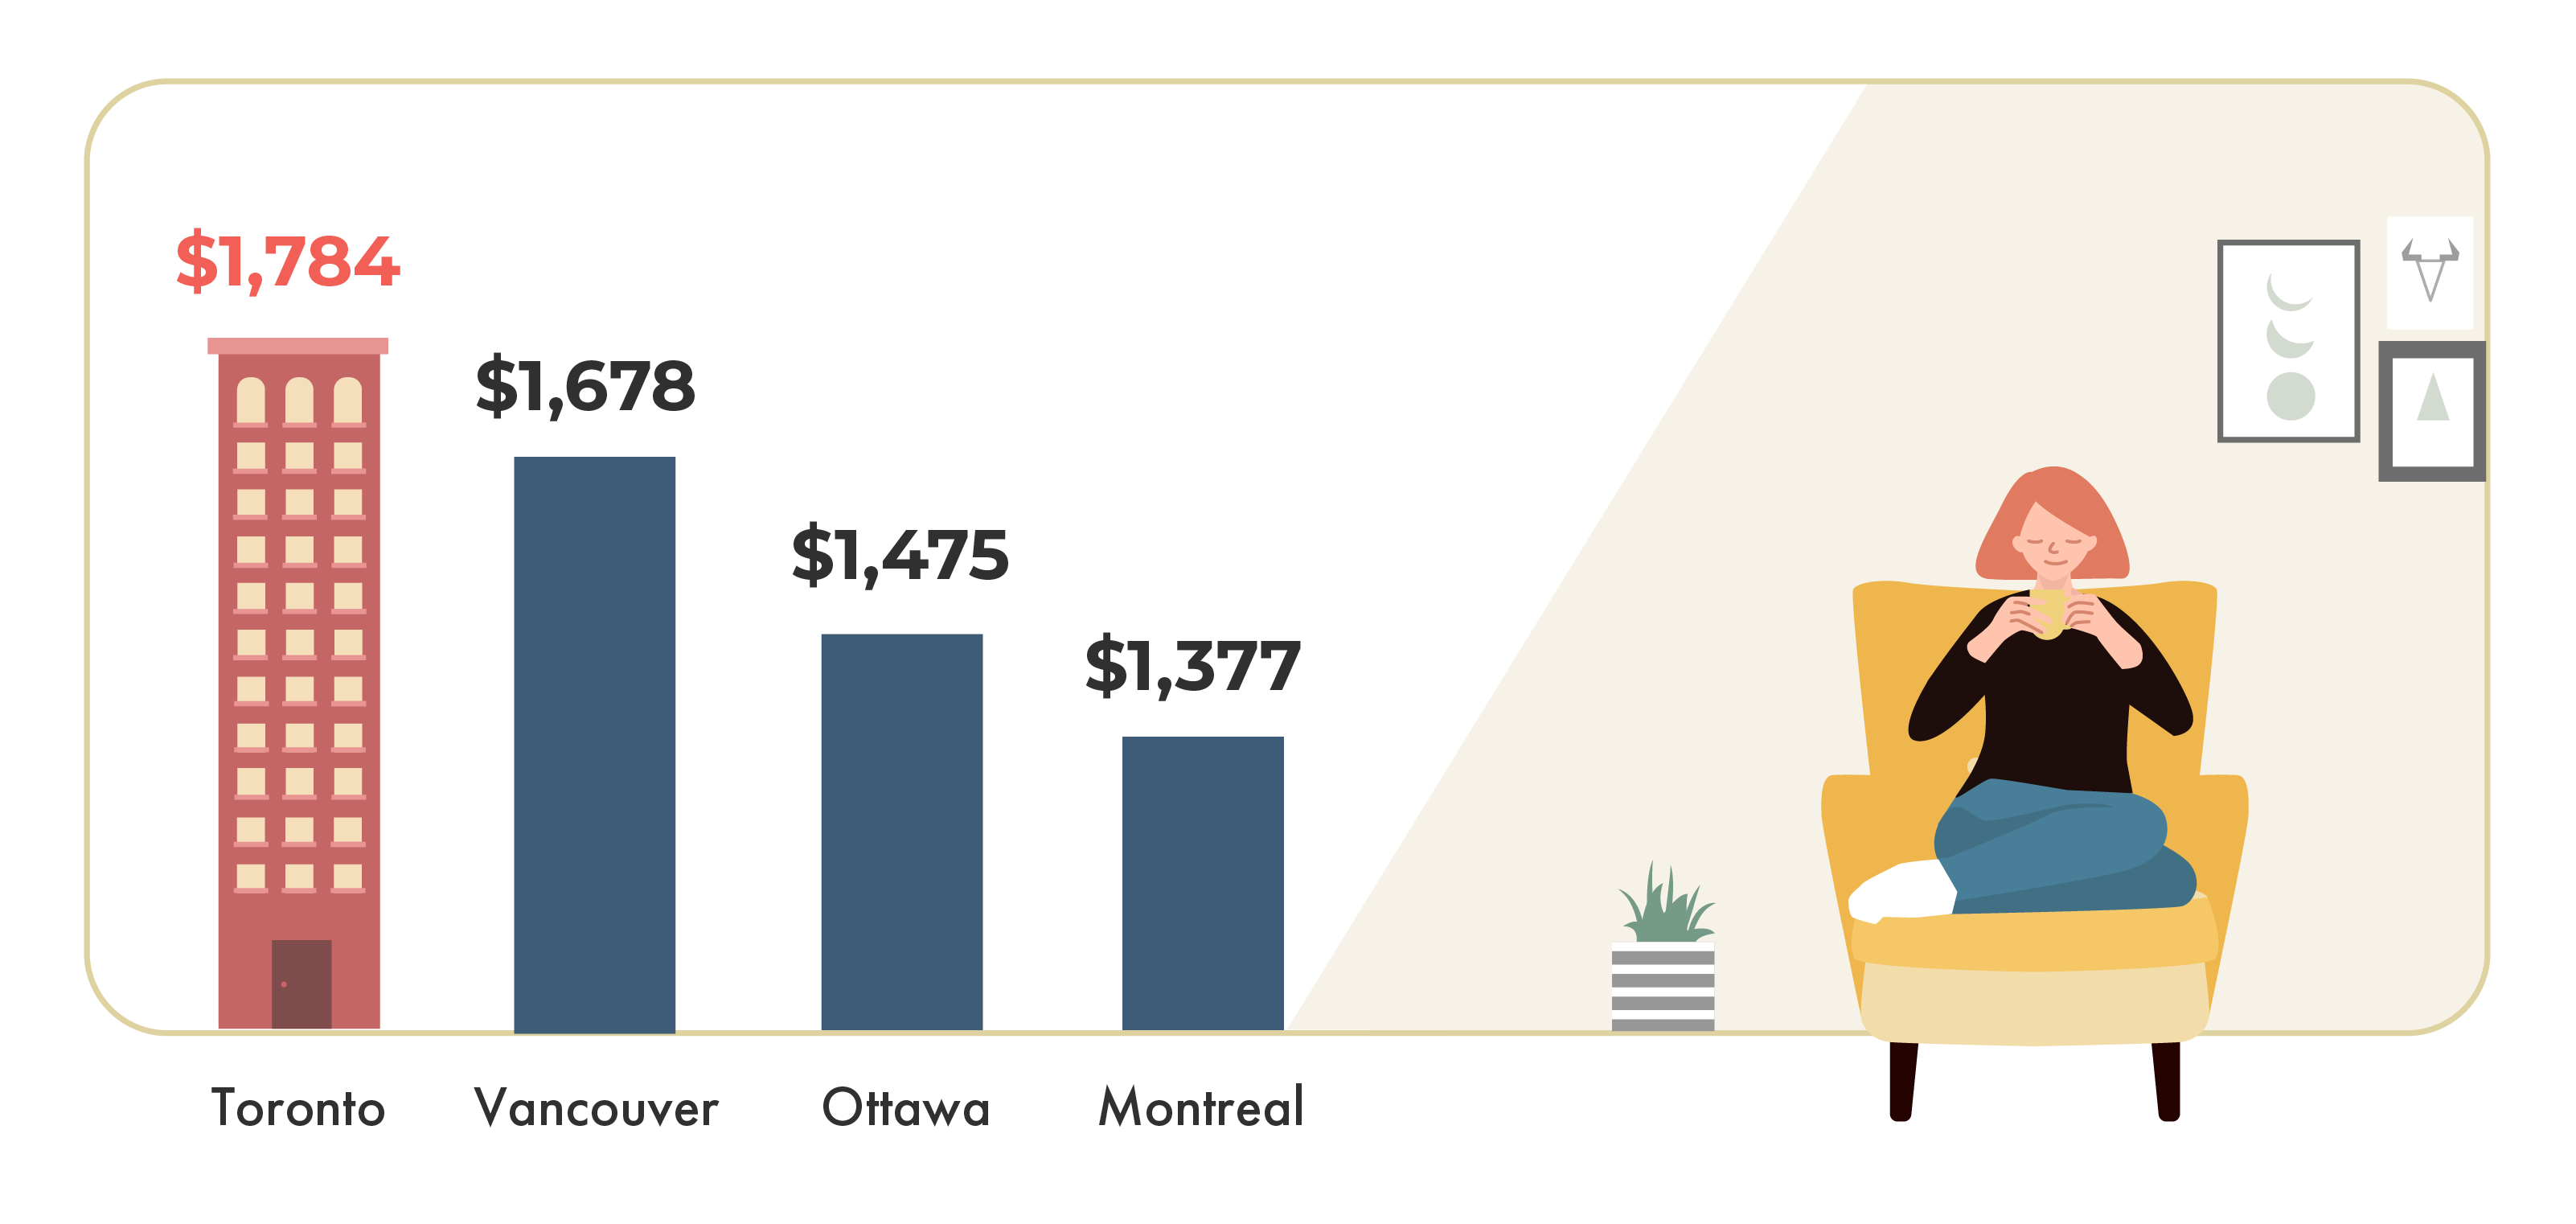 May 2020 Toronto Rent Report, May 2020 Toronto rent prices